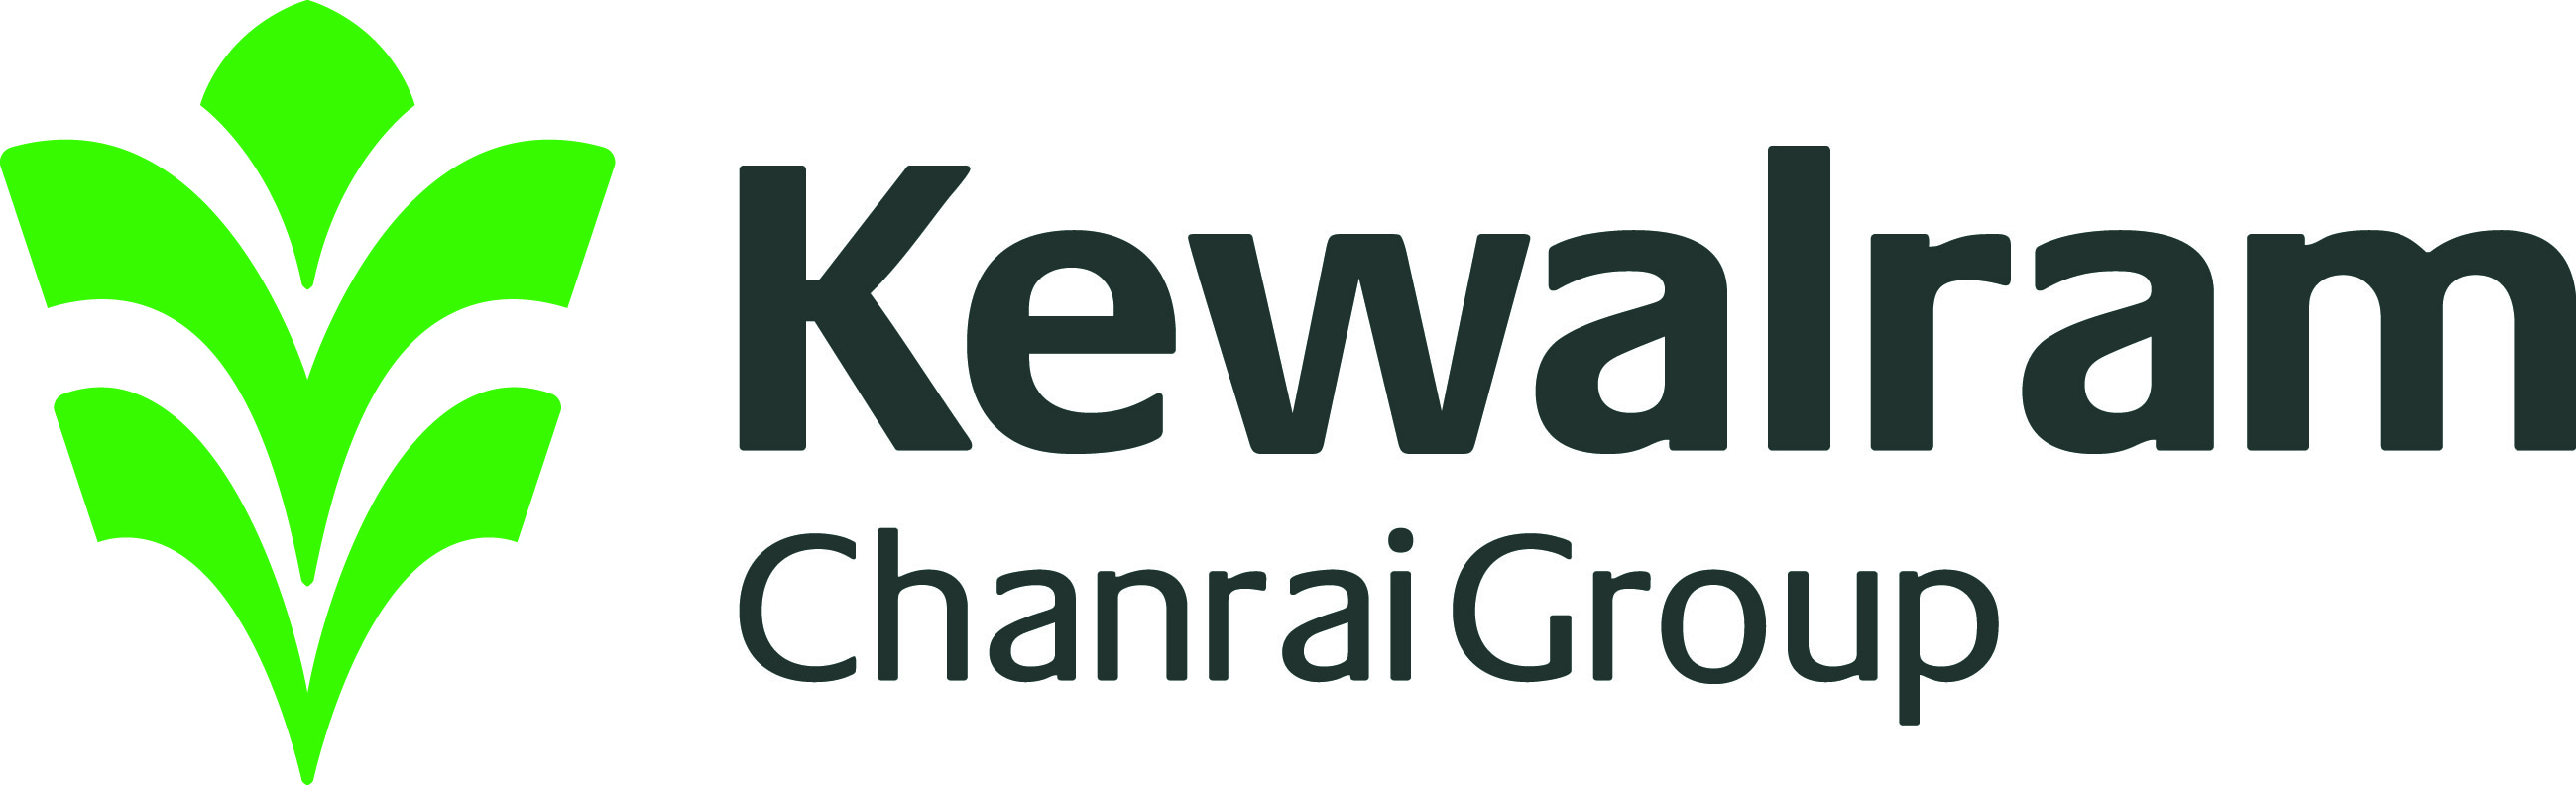 Kewalram Chanrai Group